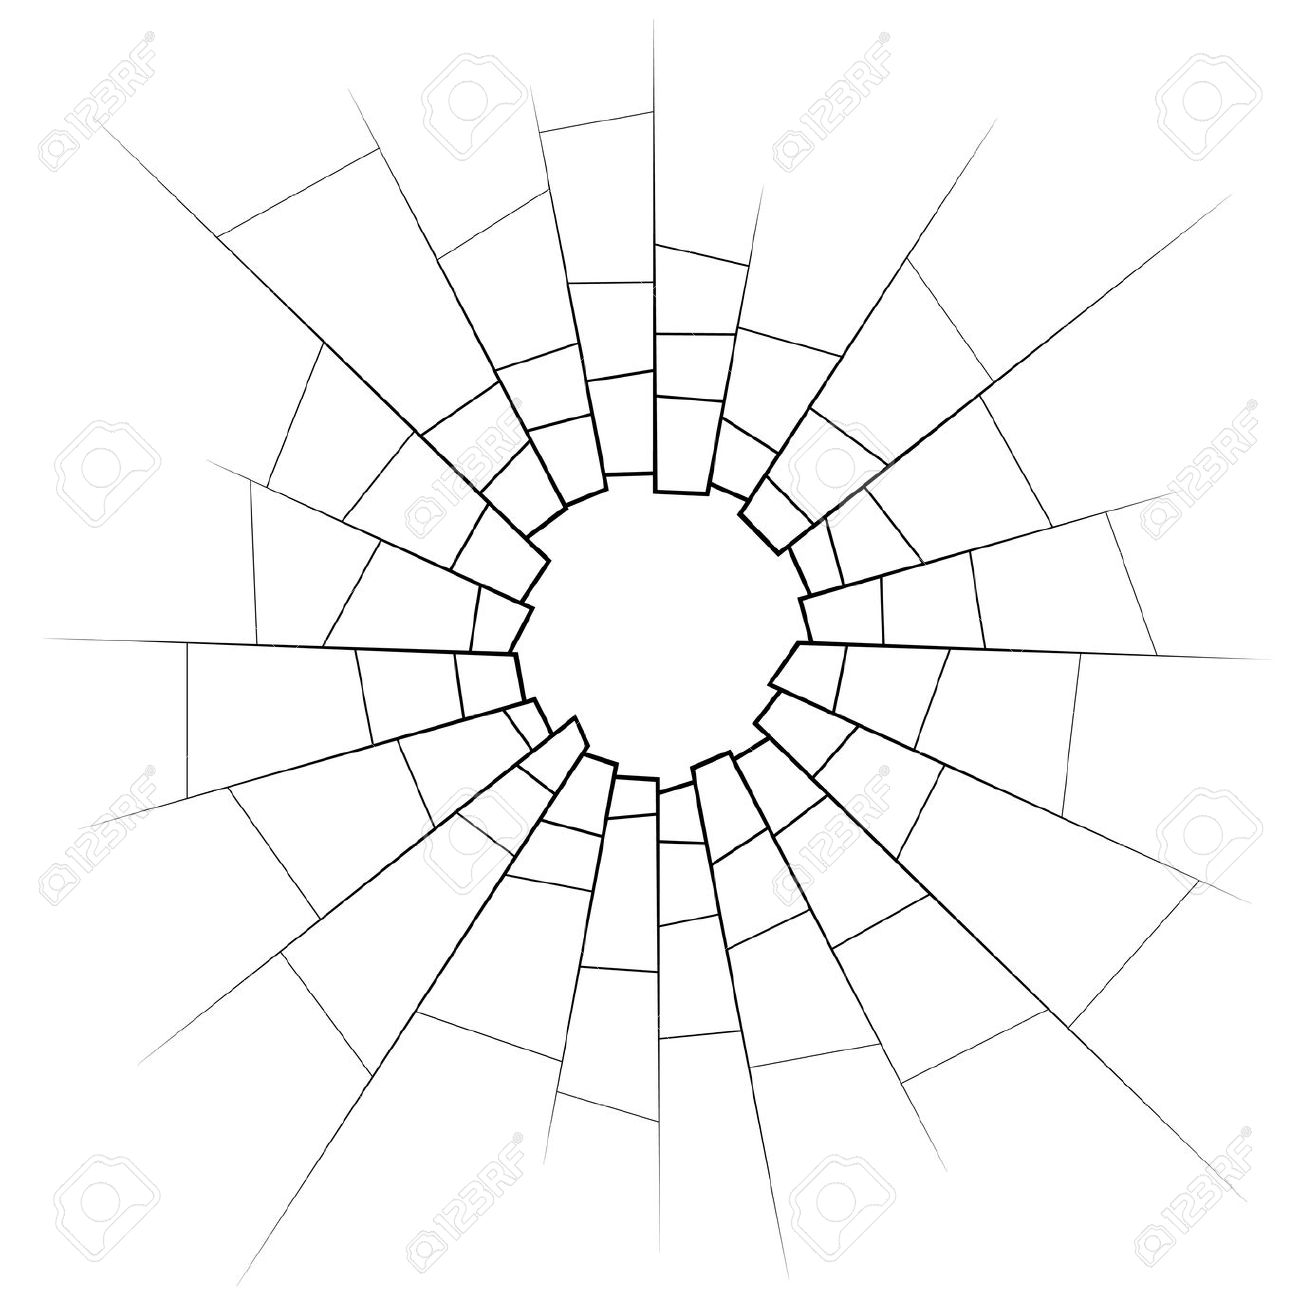 Glass crack clipart.